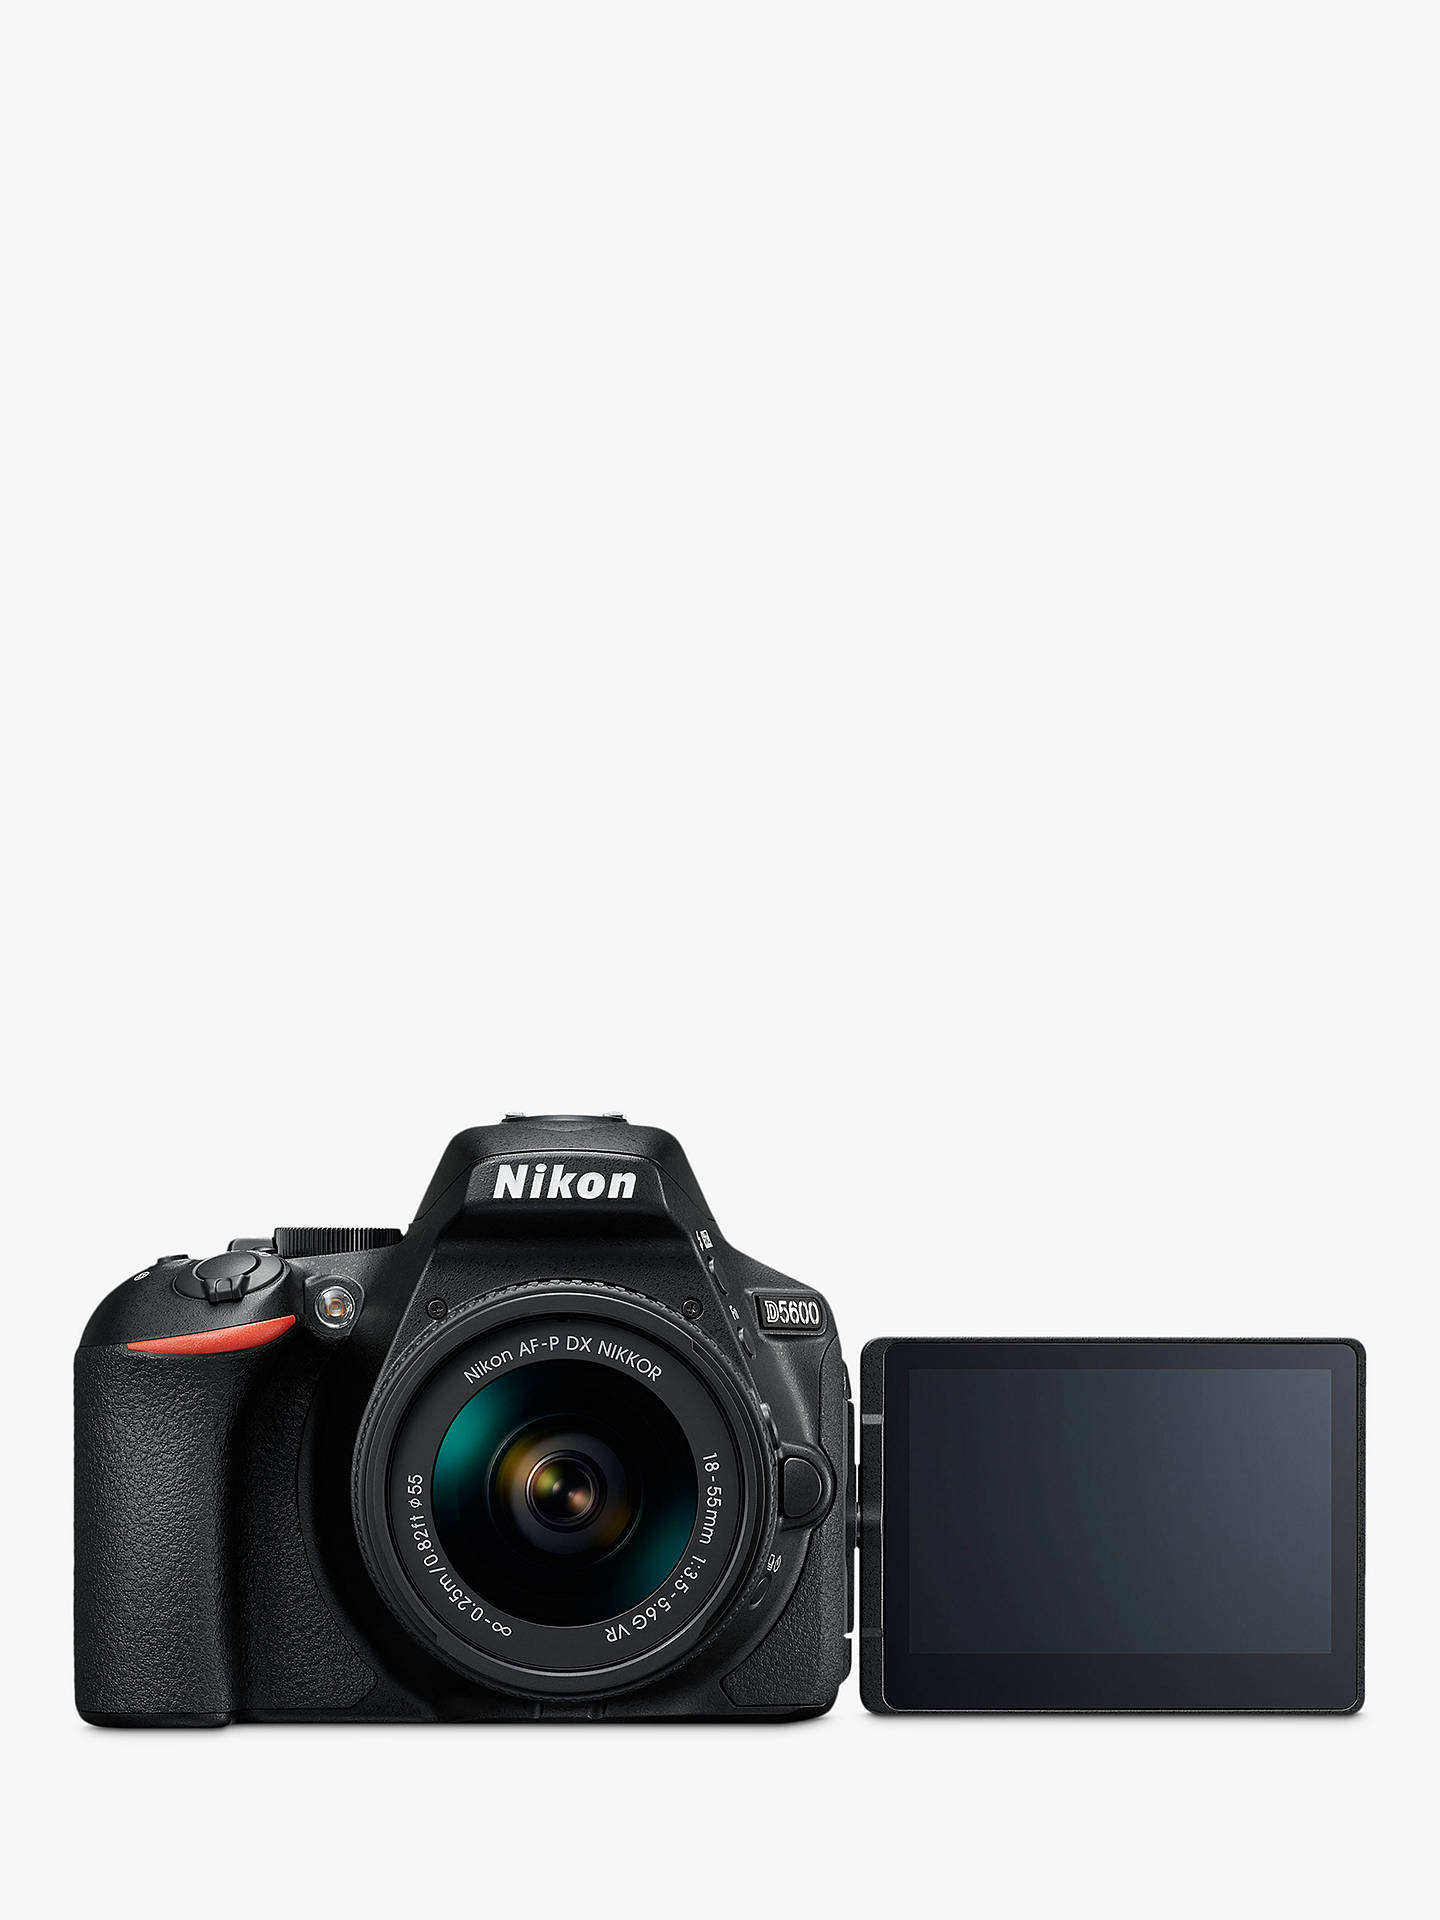 Nikon D5600 Digital SLR Camera with 18-55mm VR Lens, HD 1080p, 24 2MP,  Wi-Fi, Optical Viewfinder, 3 2